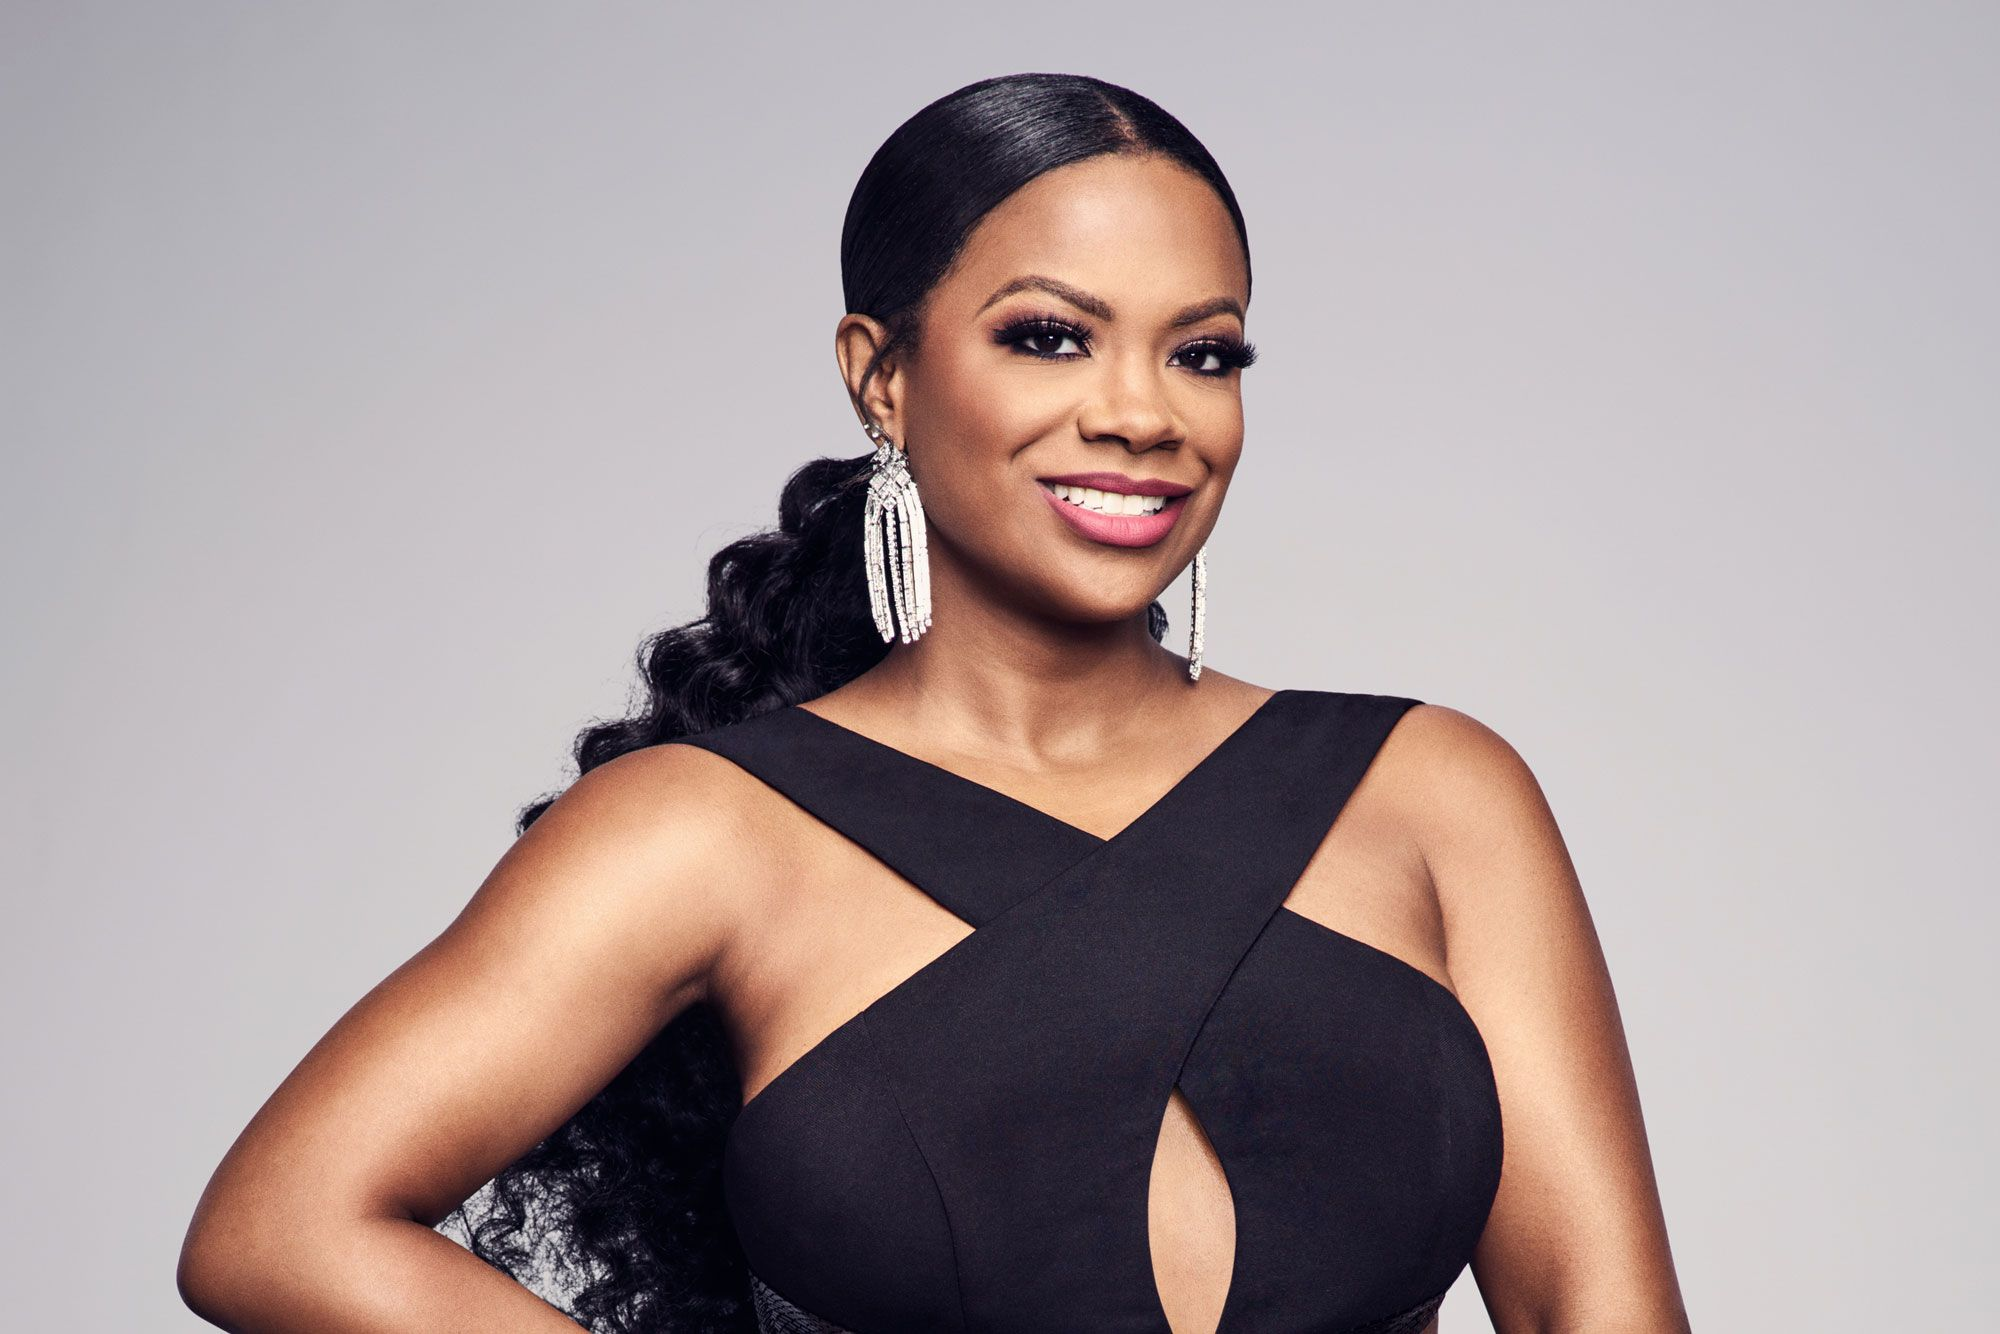 kandi-burruss-is-featured-in-the-fall-issue-of-hello-beautiful-magazine